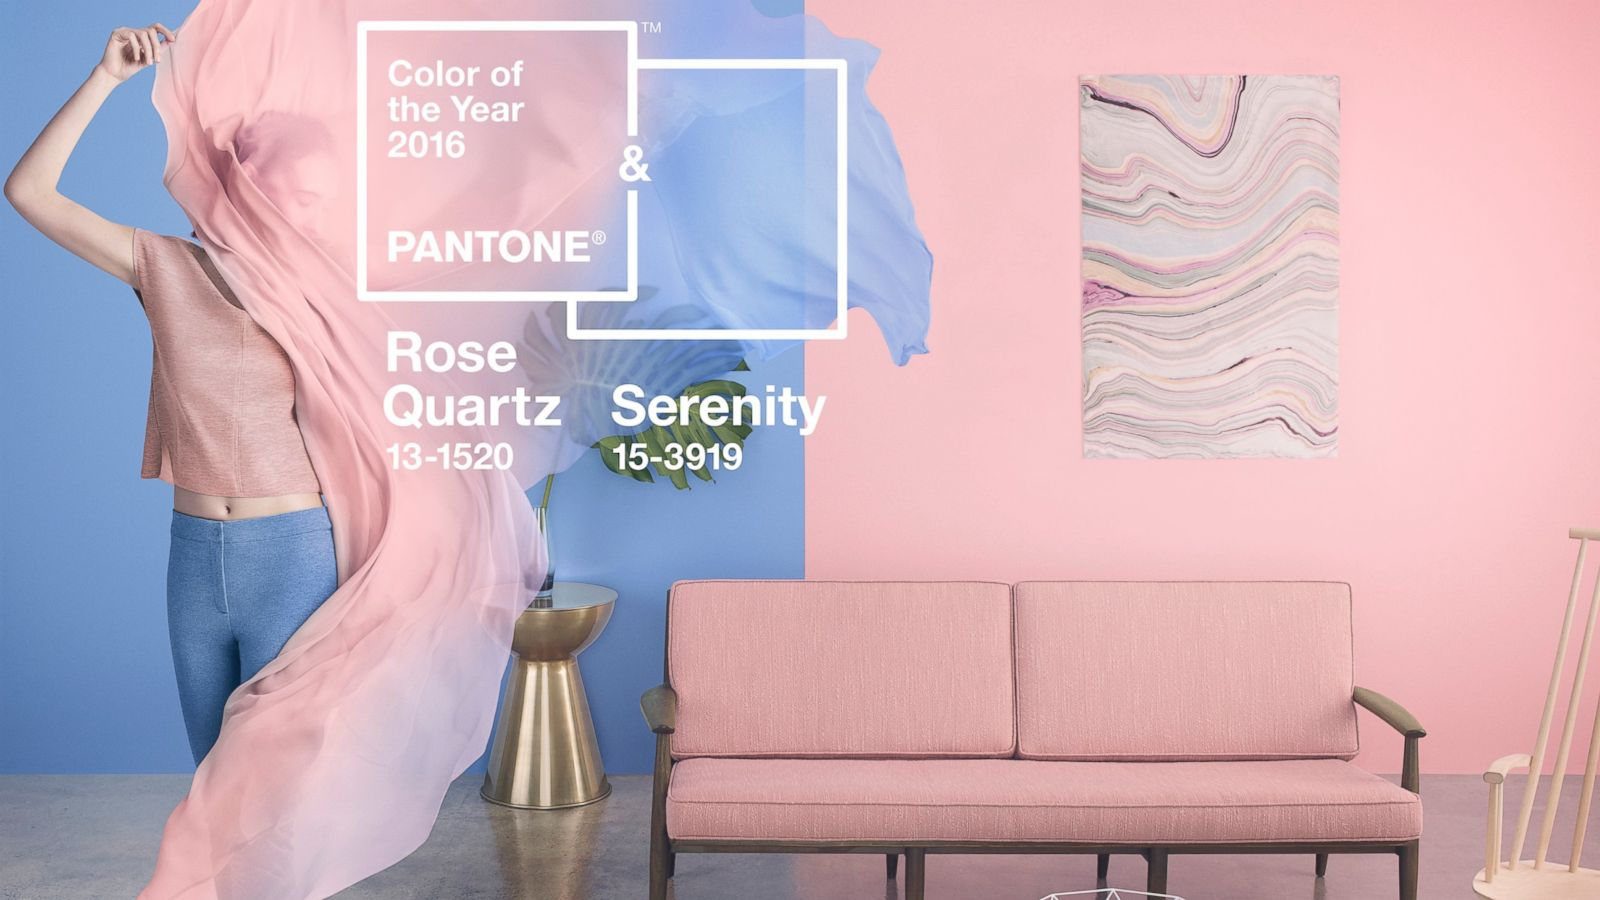 Pantone Color 2016 Pantone Color Of The Year 2016 Is Blend Of Serenity And Rose